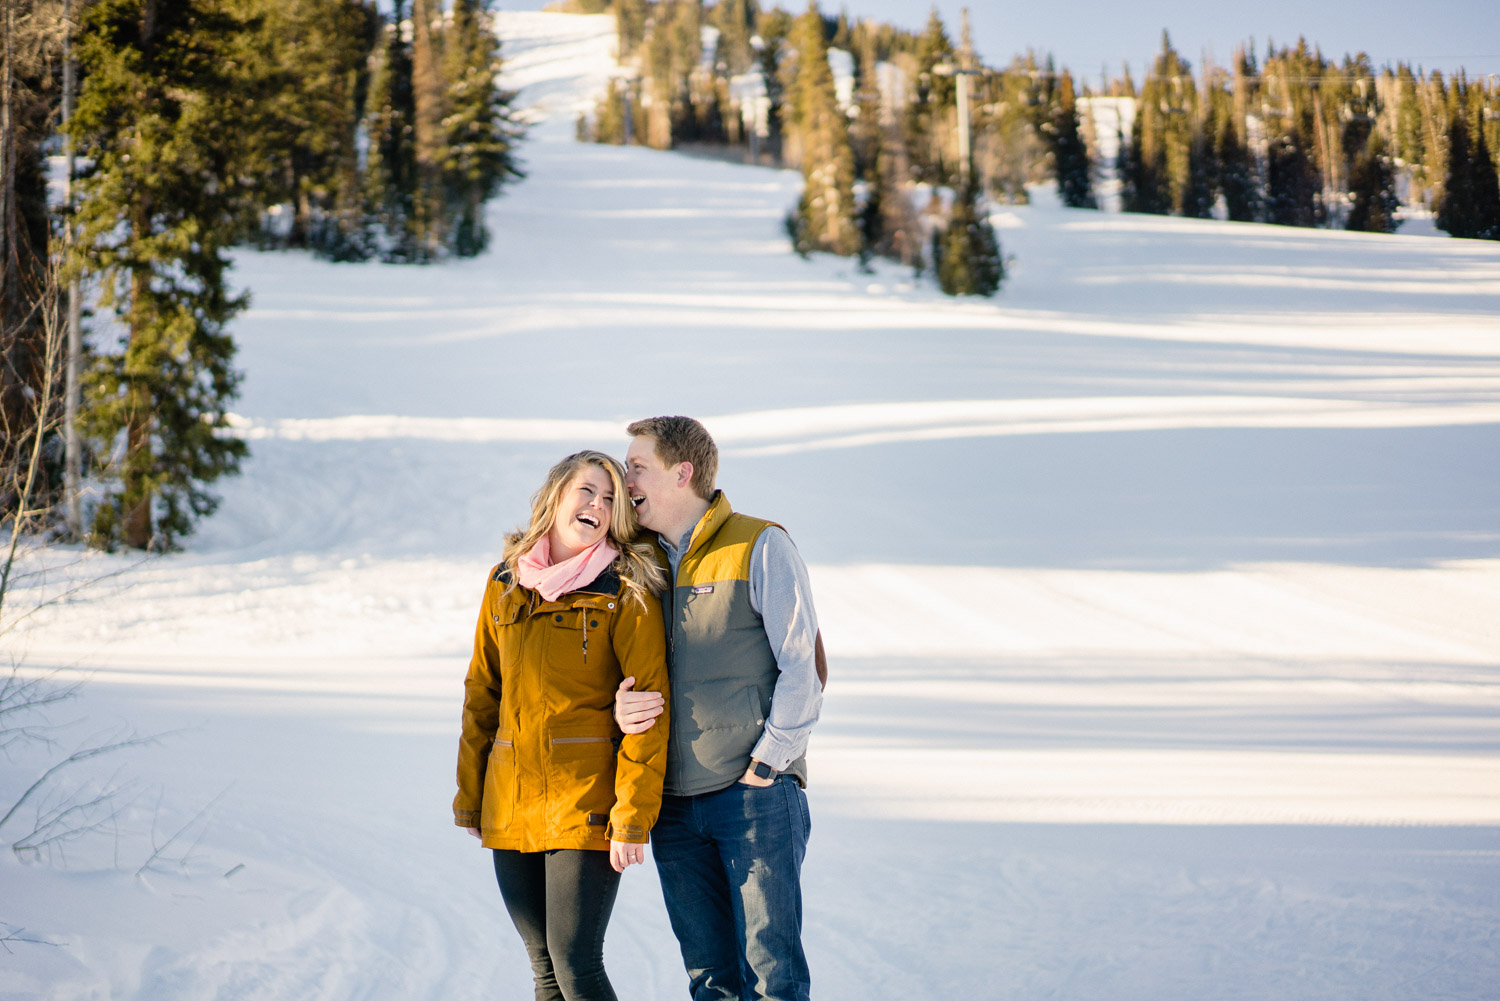 happy engaged couple on snowy mountain with trees